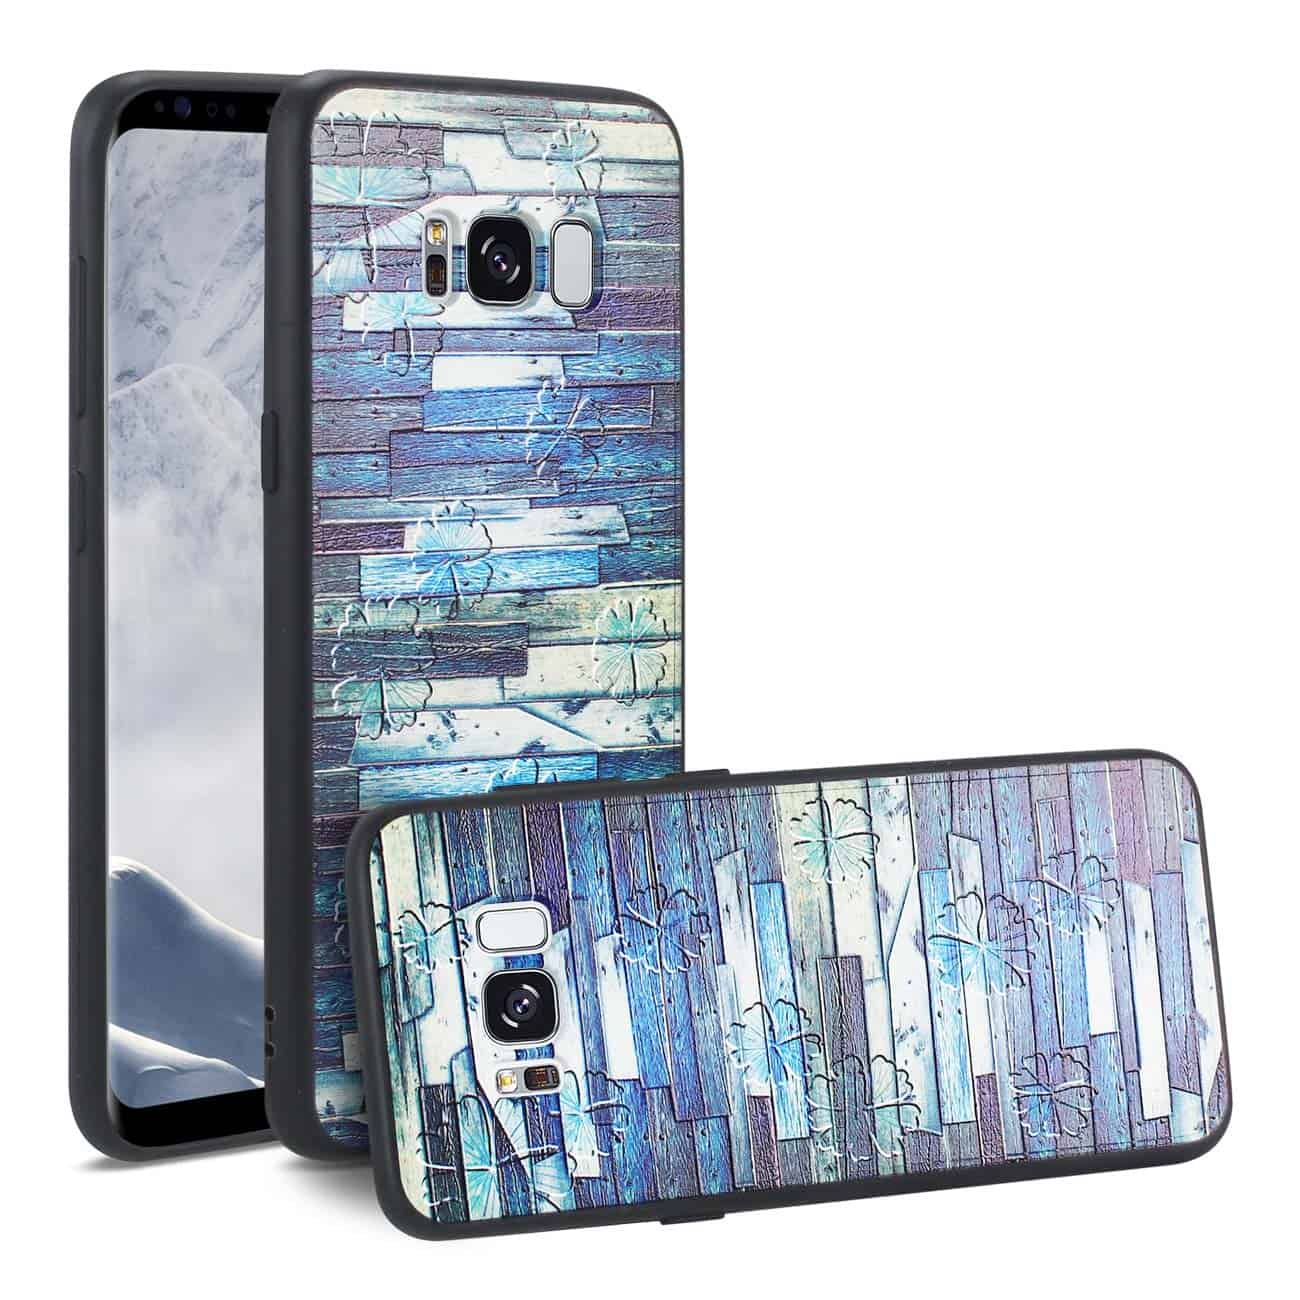 SAMSUNG GALAXY S8 EMBOSSED WOOD PATTERN DESIGN TPU CASE WITH MULTI-LETTER